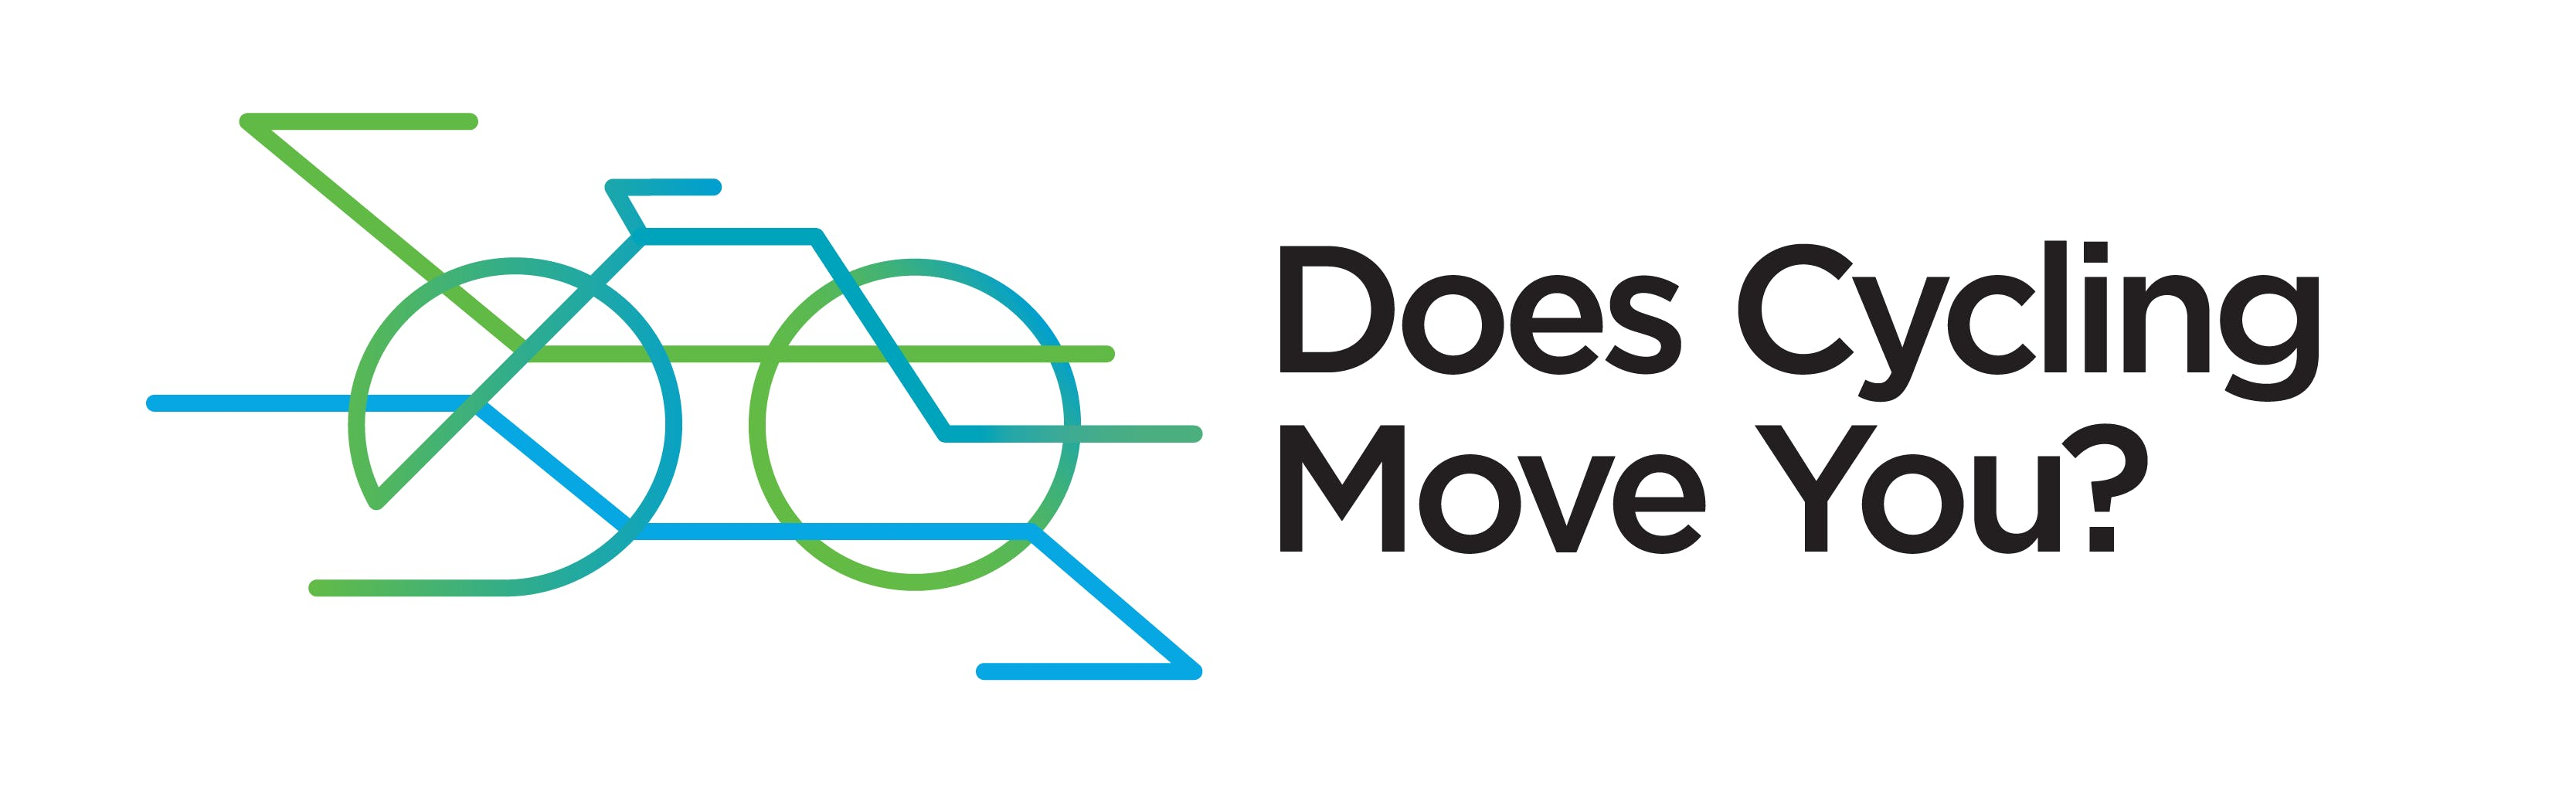 Does Cycling Move You logo